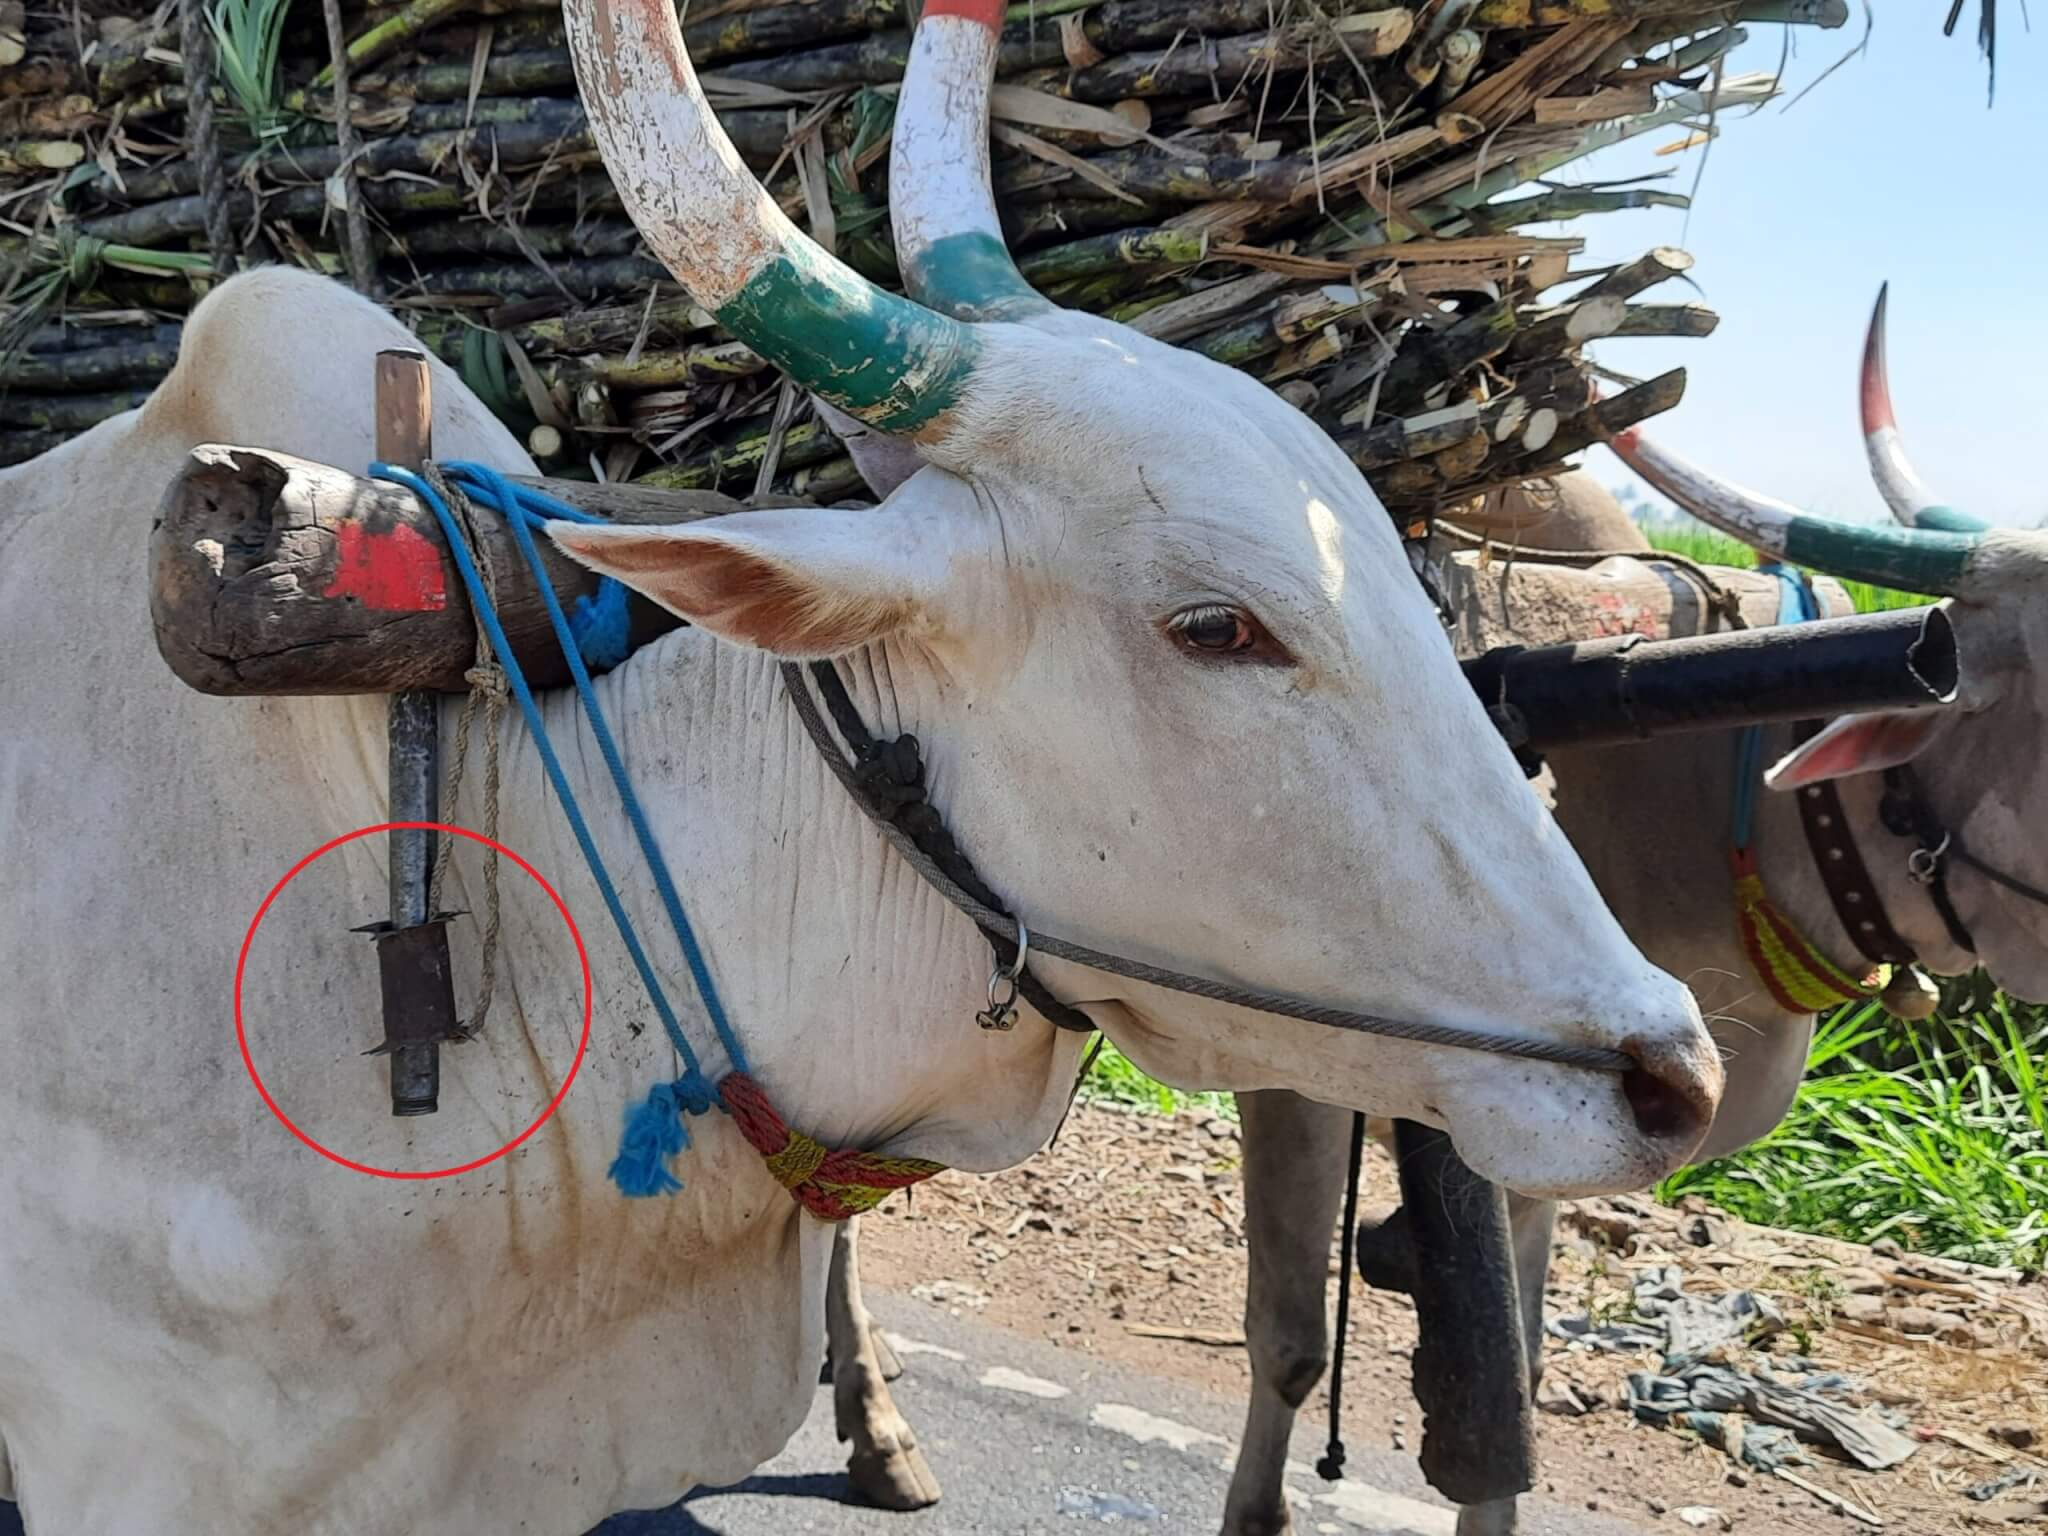 A bullock hauls a cart piled high with sugarcane while enduring the pain of a cruel nose rope and an illegal yoke spike.